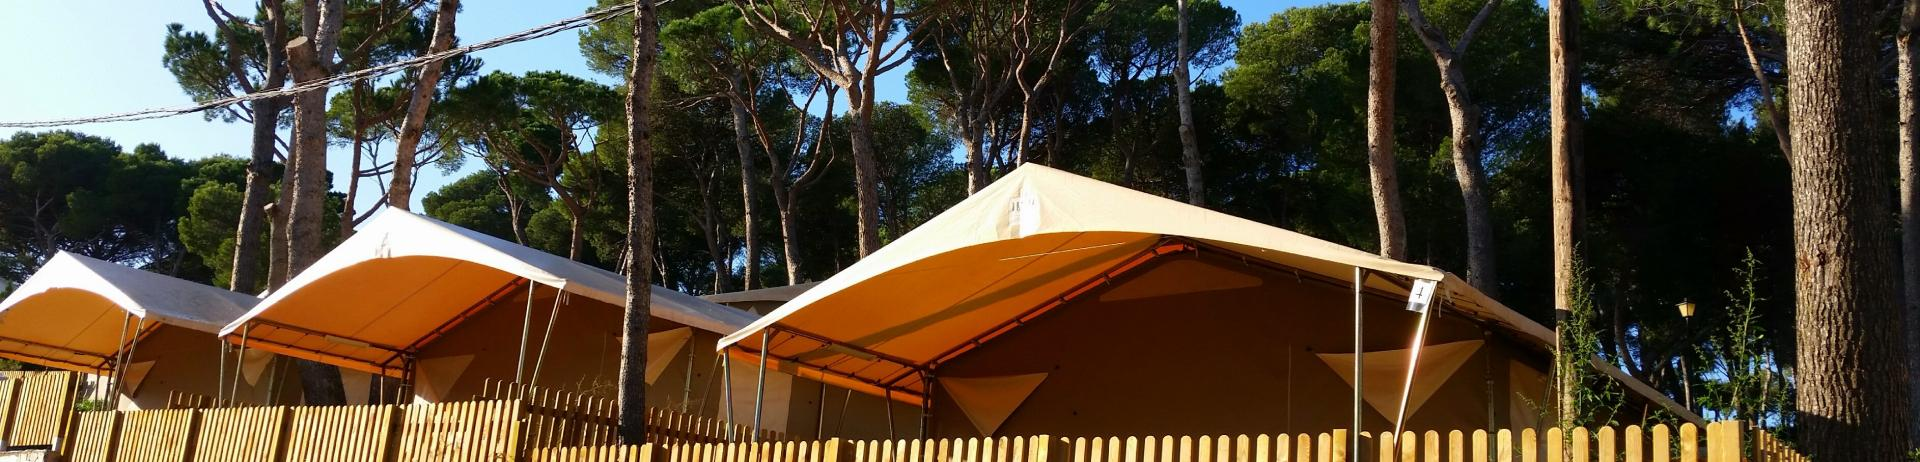 Luxury tents in Pals